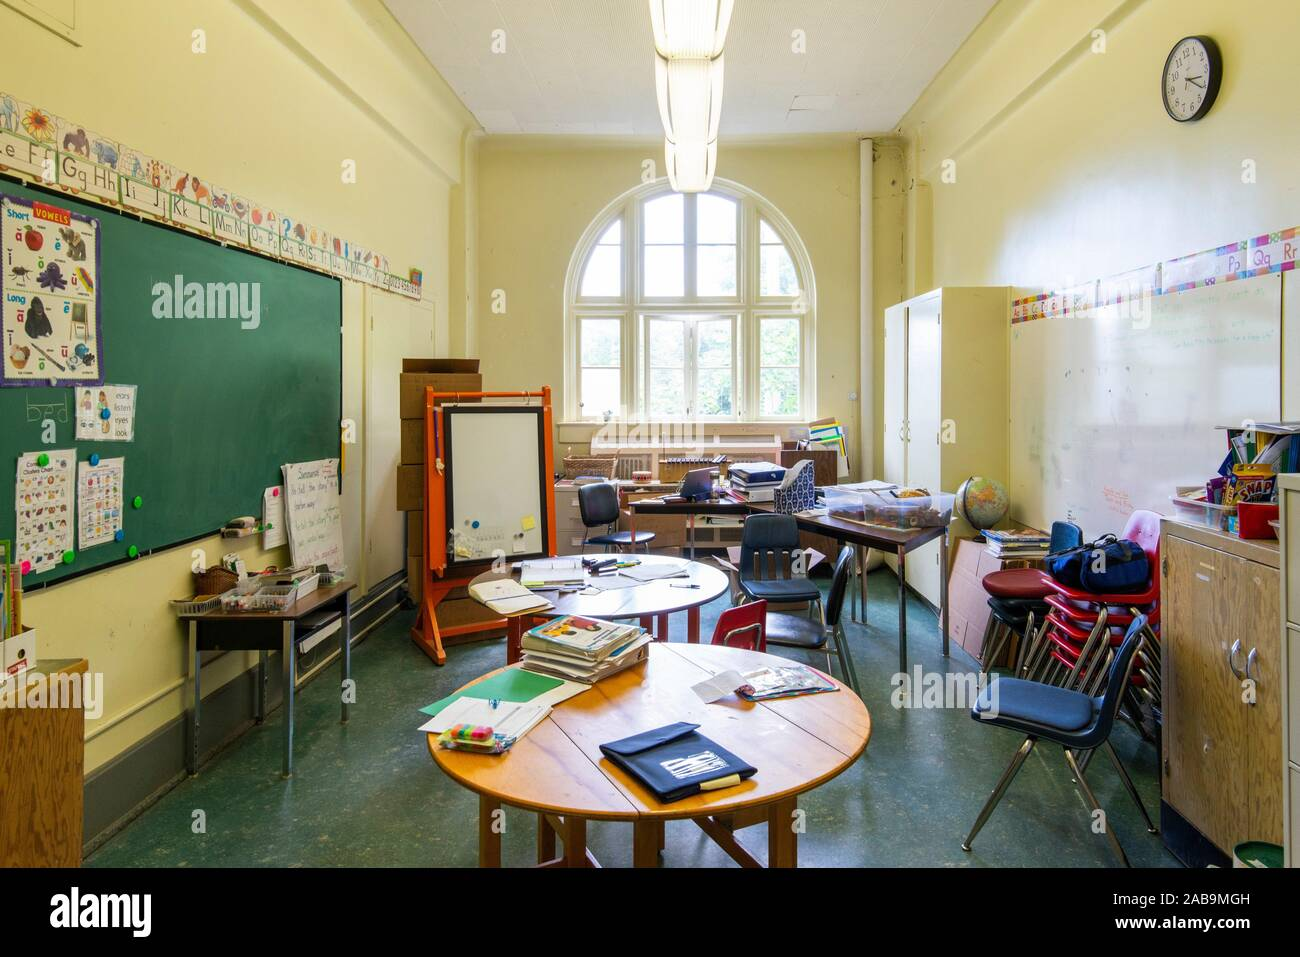 Interior Of An Elementary School In Vancouver Bc Canada Stock Photo Alamy